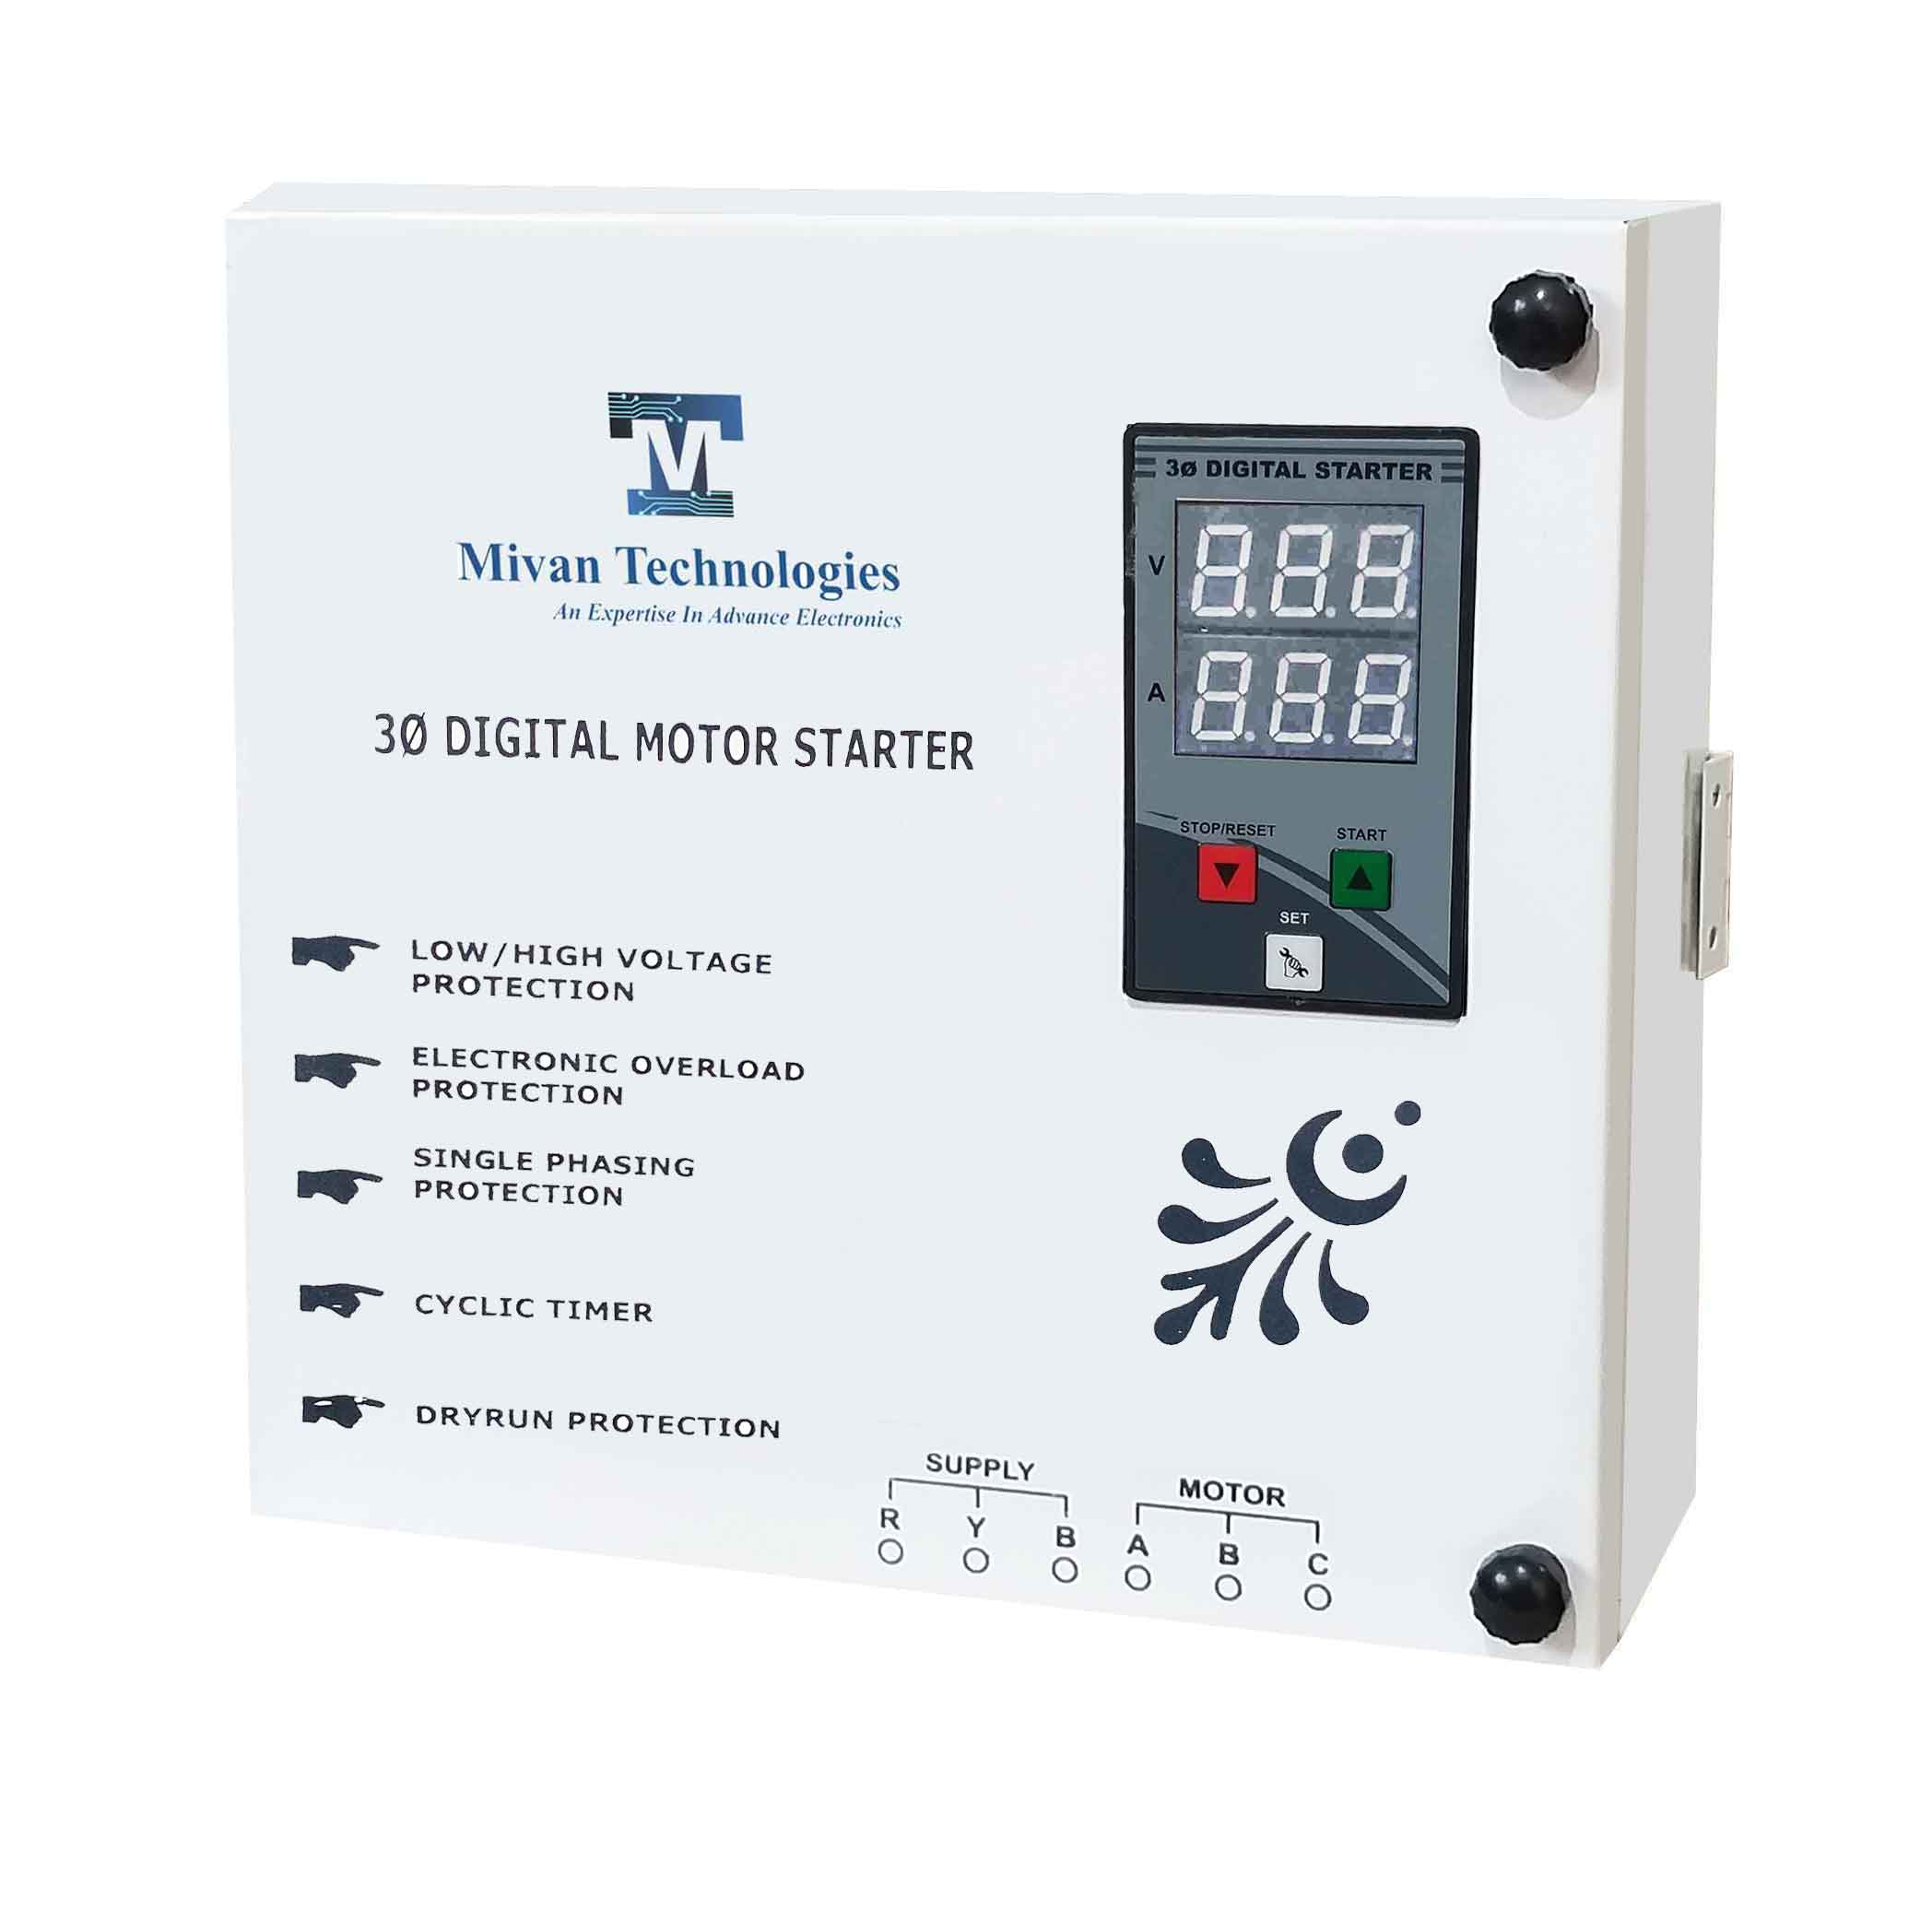 DP 301 T MS 3 phase DOL digital starter for 3 phase motor suitable up to 7.5 hp motor with all protections with auto switch and timer